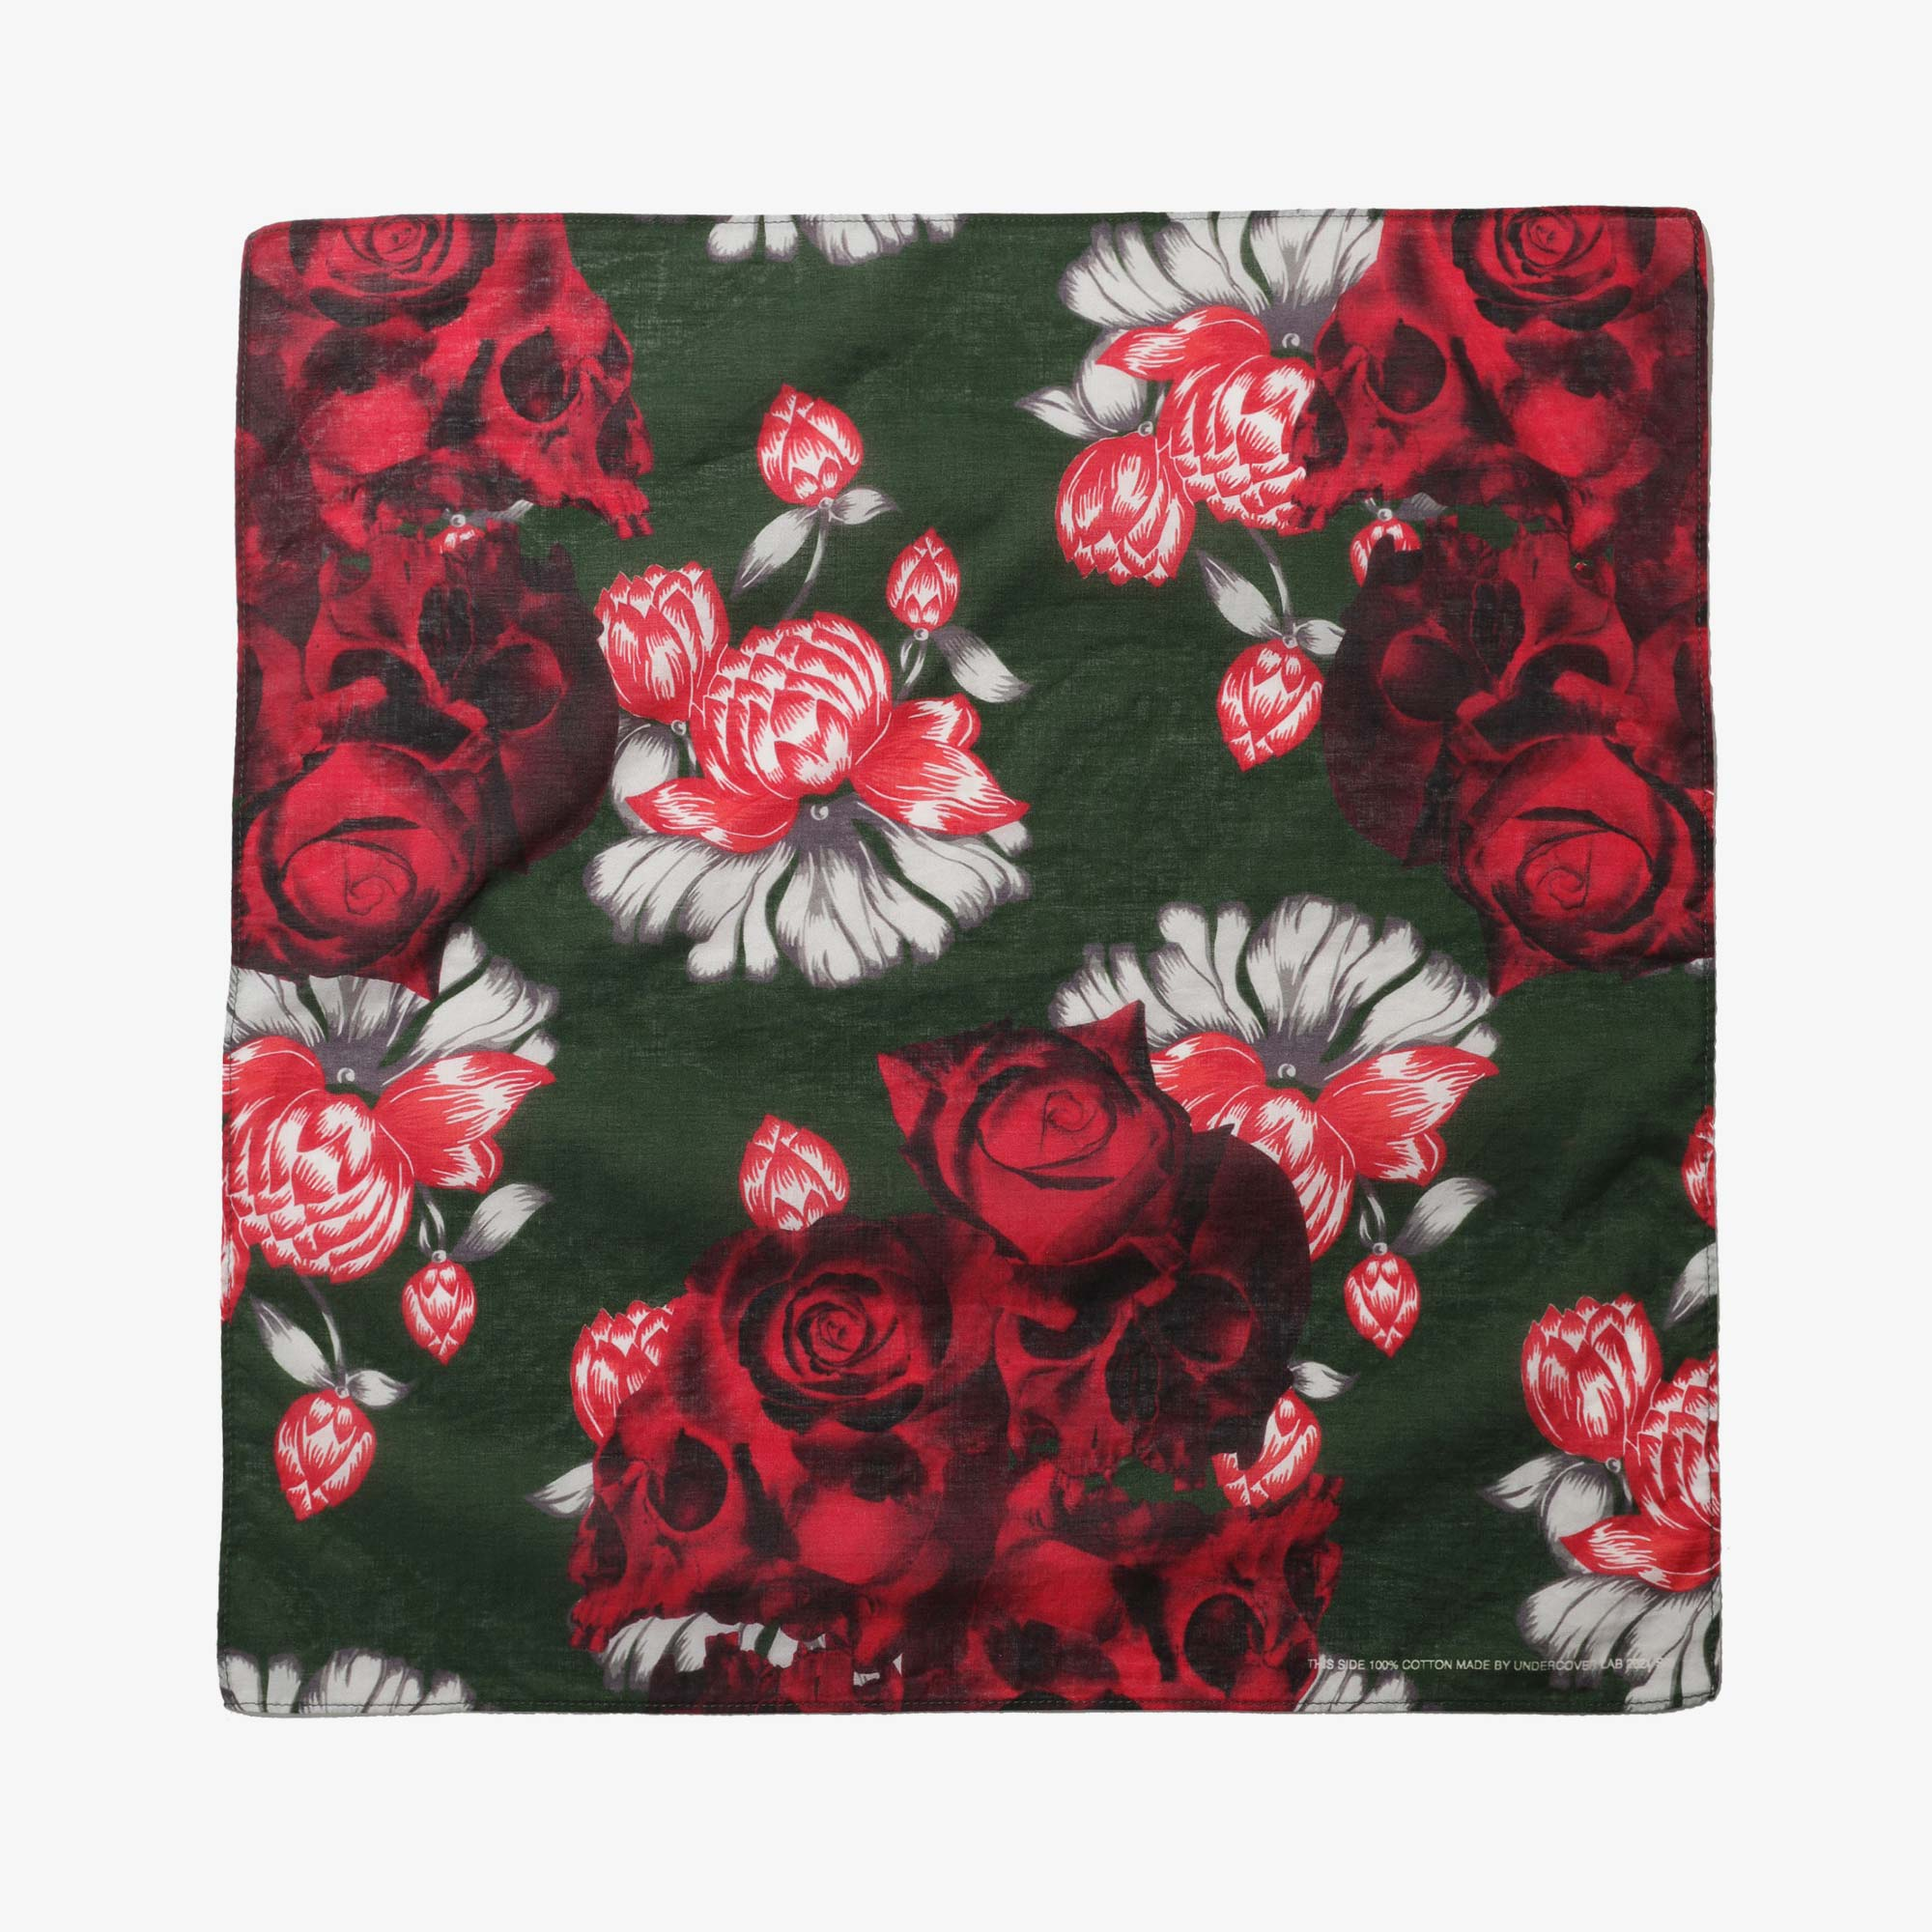 Undercover Roses Skull Pocket Square UC1A4M01-3 - Green Base 1